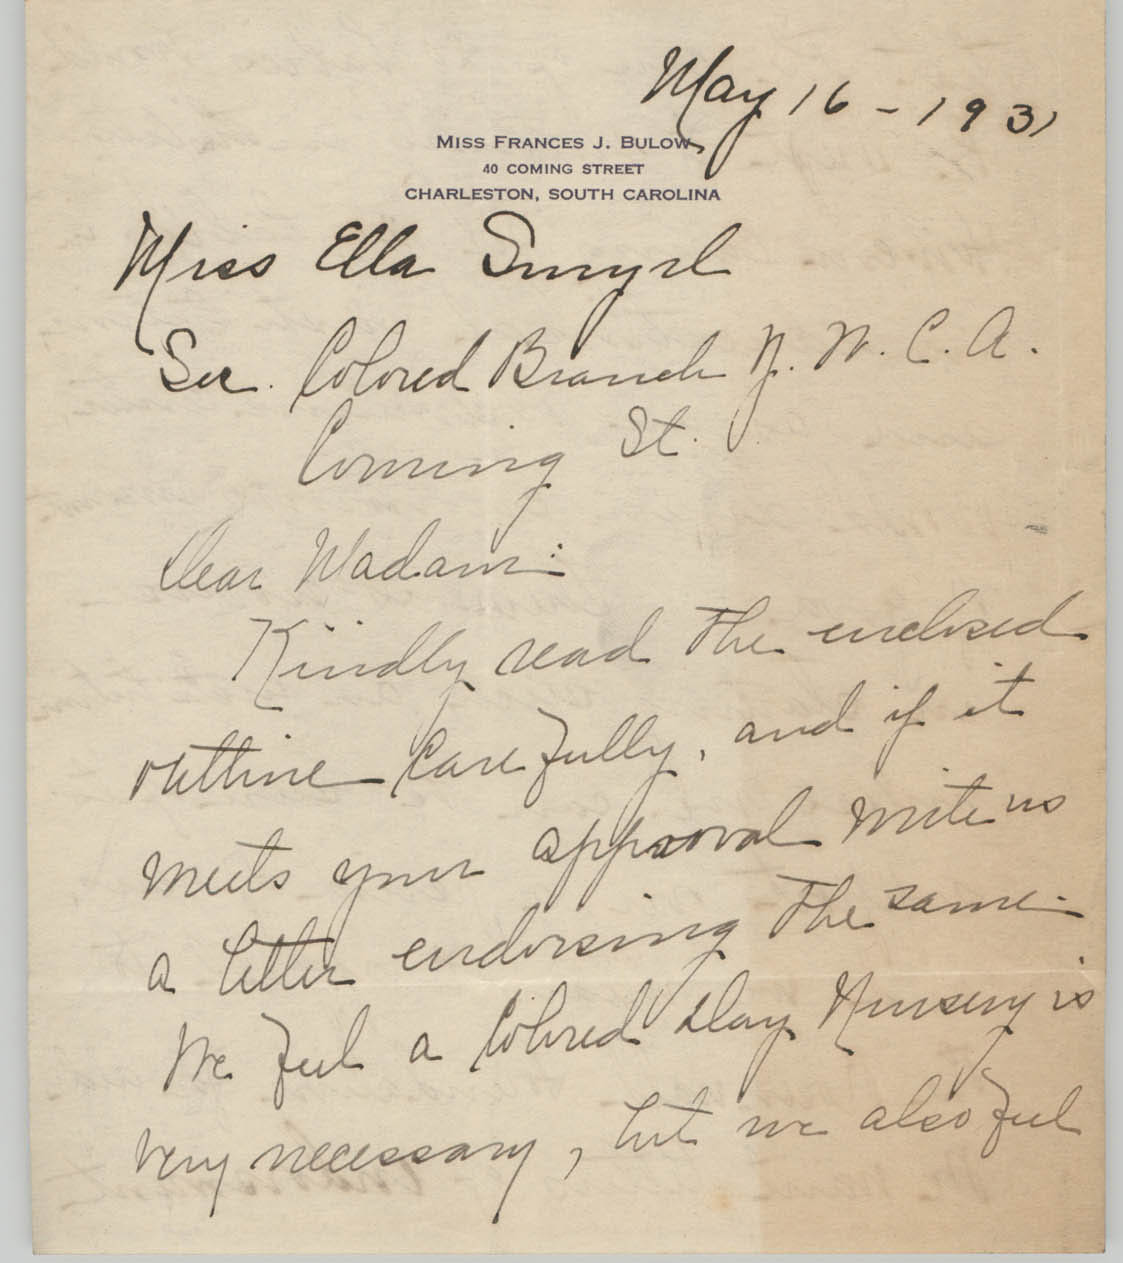 Letter from Frances J. Bulow to Ella L. Smyrl, May 16, 1931